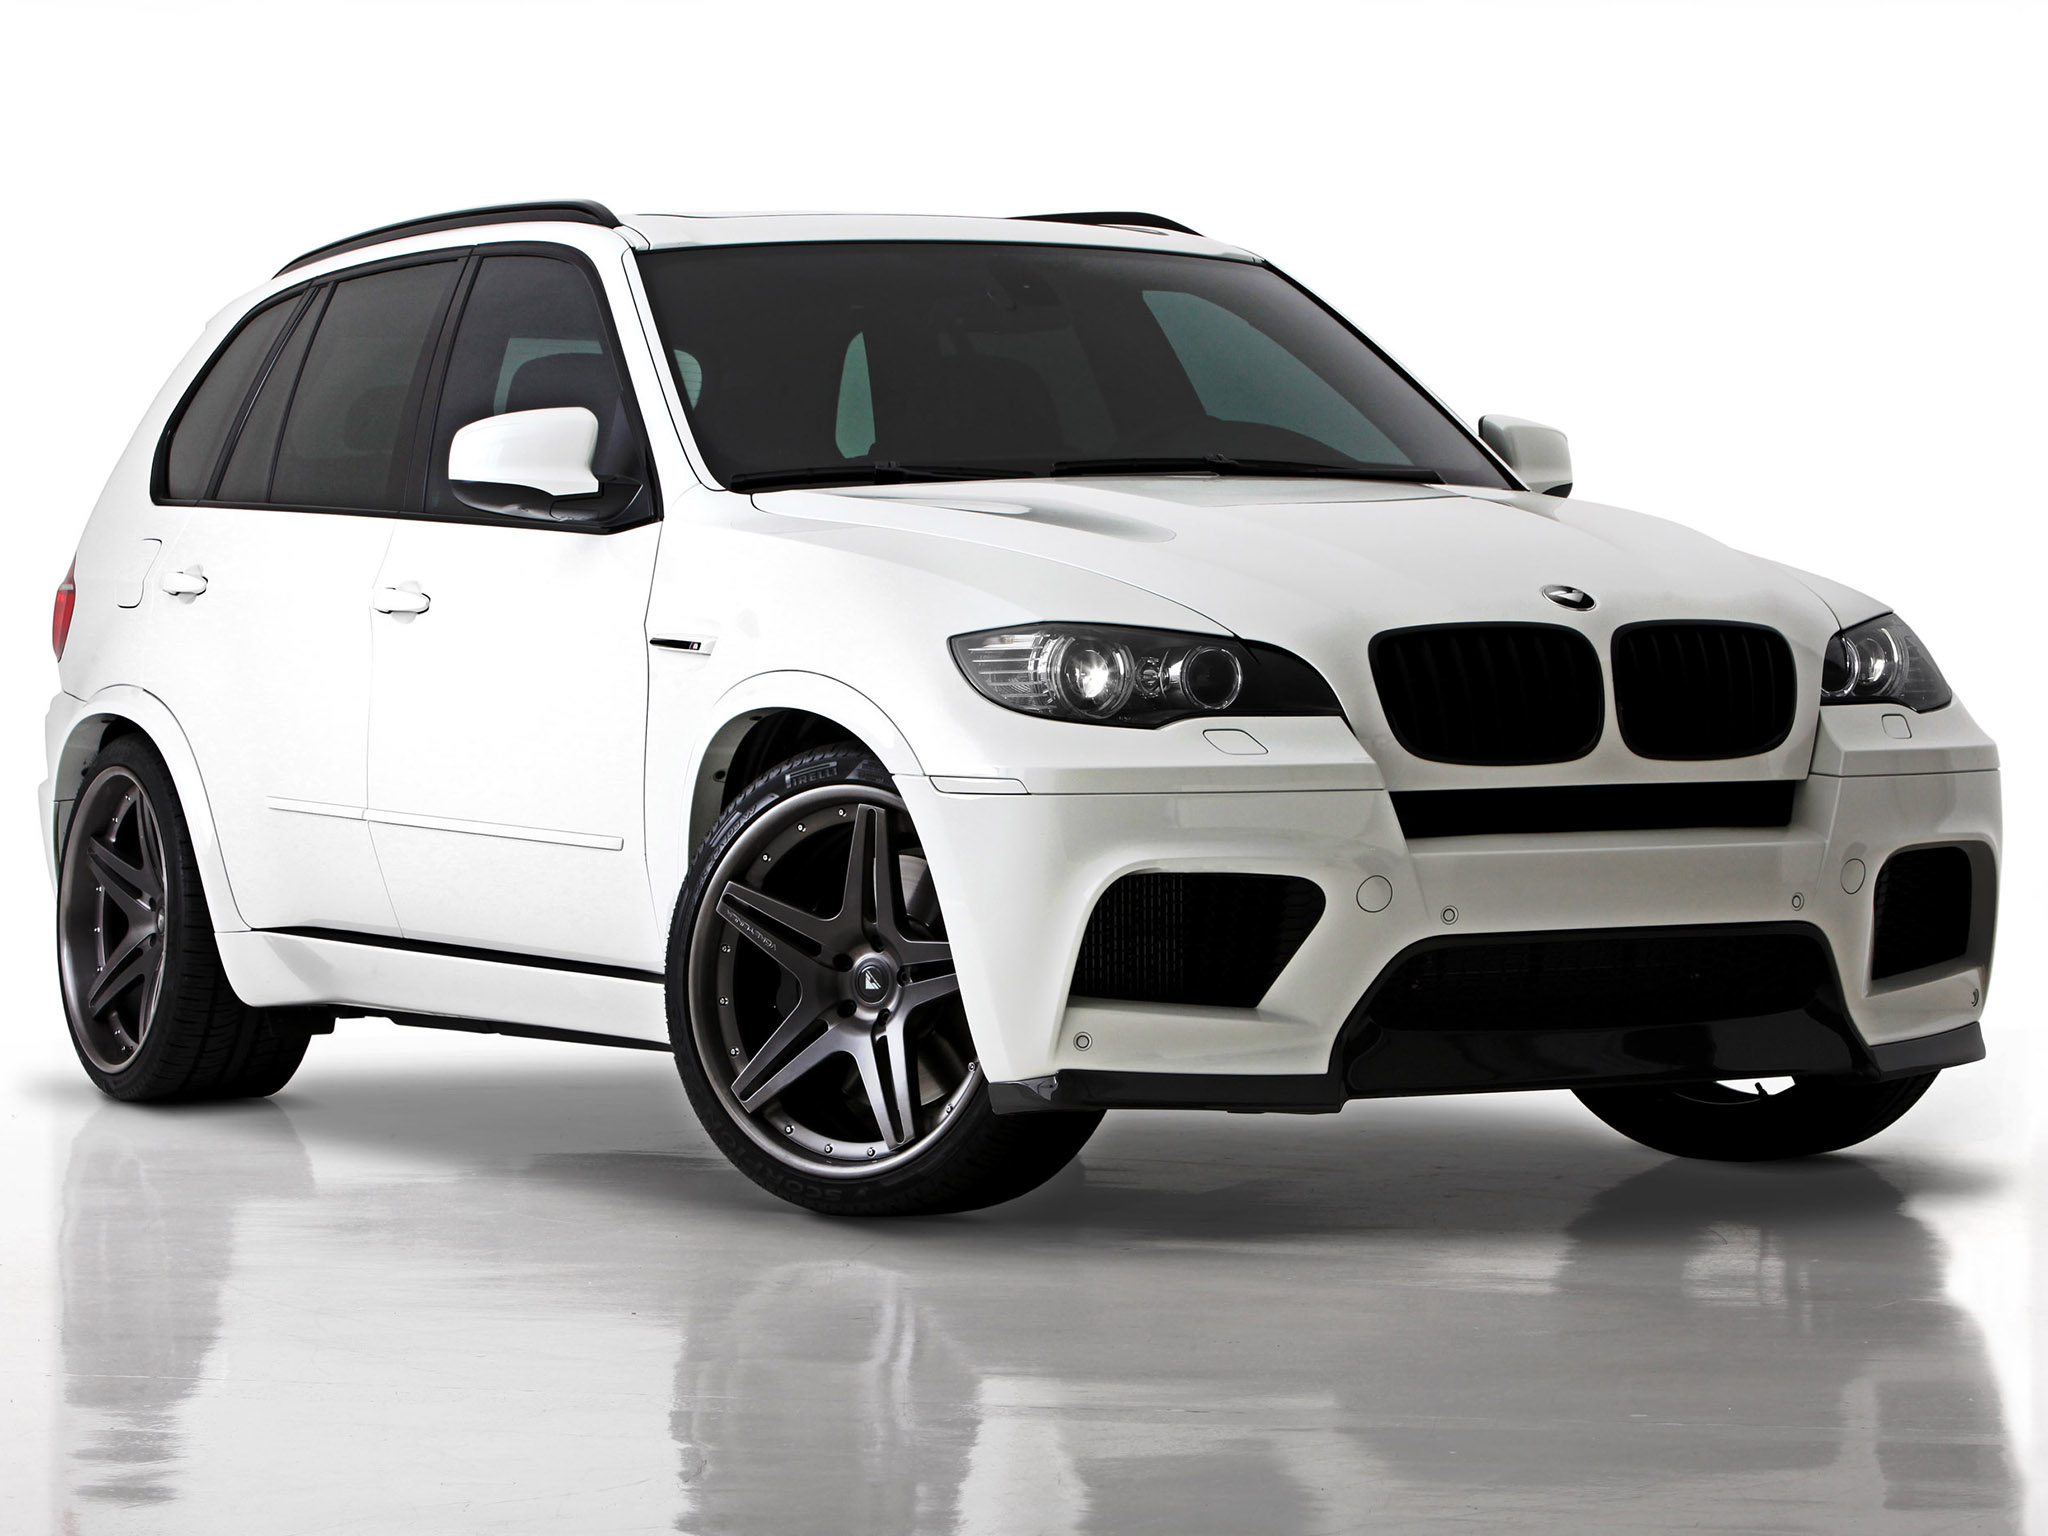 vorsteiner bmw x5 m e70 2011 vorsteiner bmw x5 m e70 2011 photo 02 car in pictures car photo. Black Bedroom Furniture Sets. Home Design Ideas